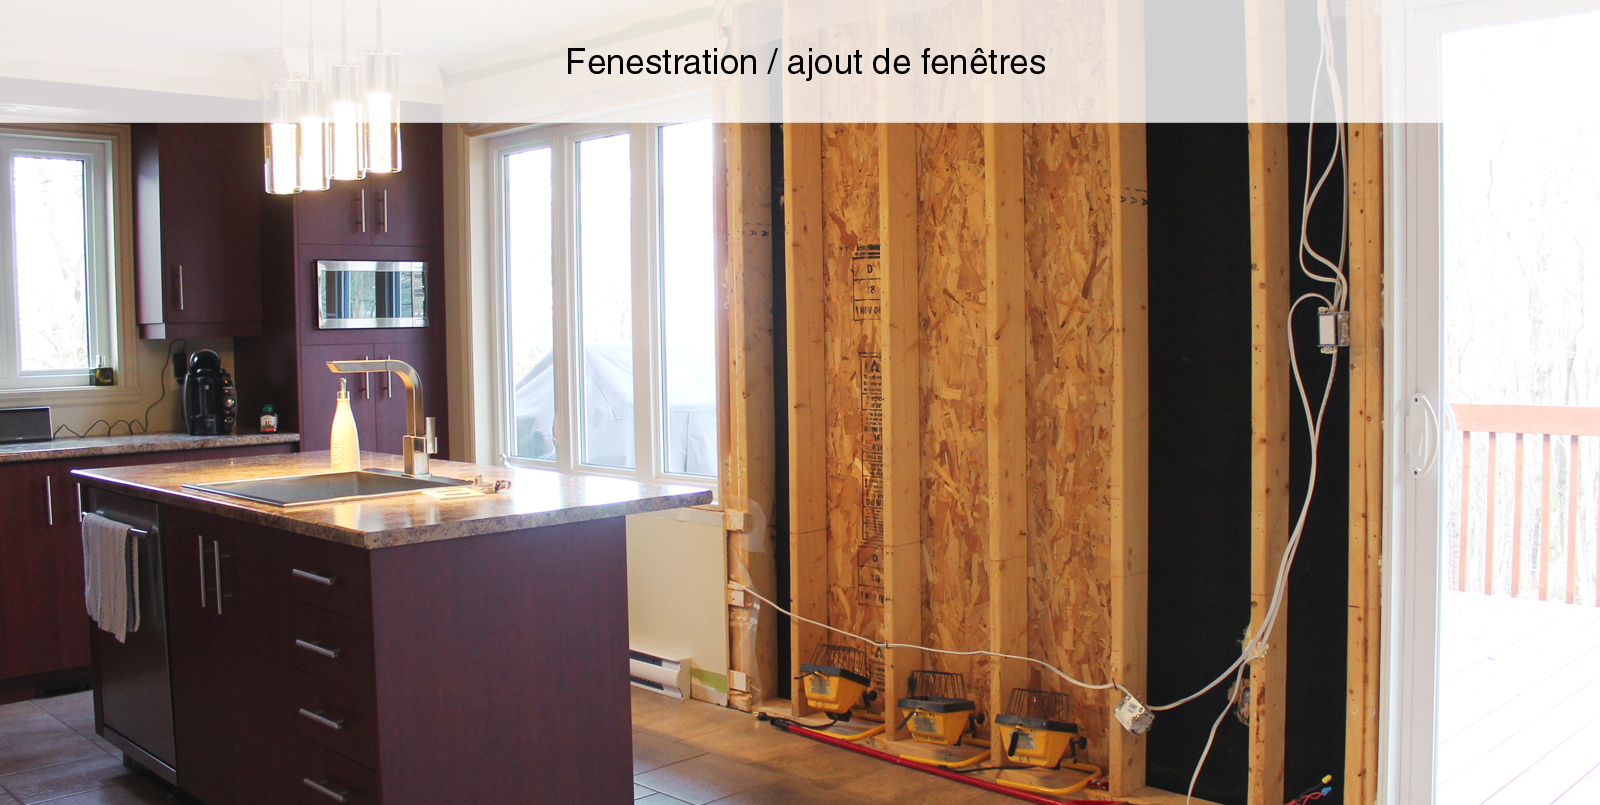 32-1-PANACHE-CONSTRUCTION-RENOVATION-FENESTRATION-FENETRE